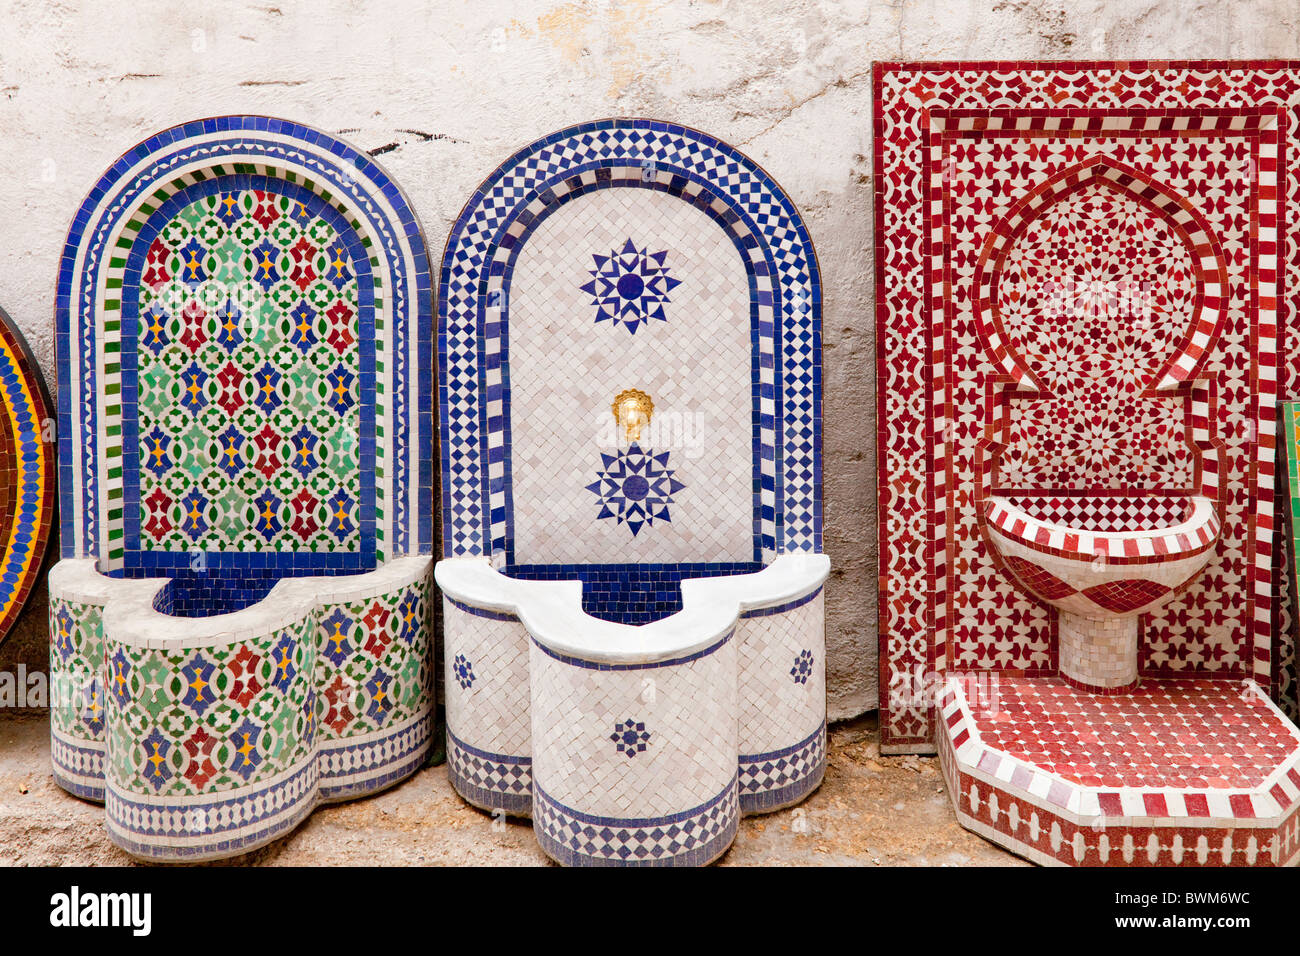 A Ceramic Factory Manufacturing Mosaic Tile Fountains And Furniture In Fes,  Morocco.